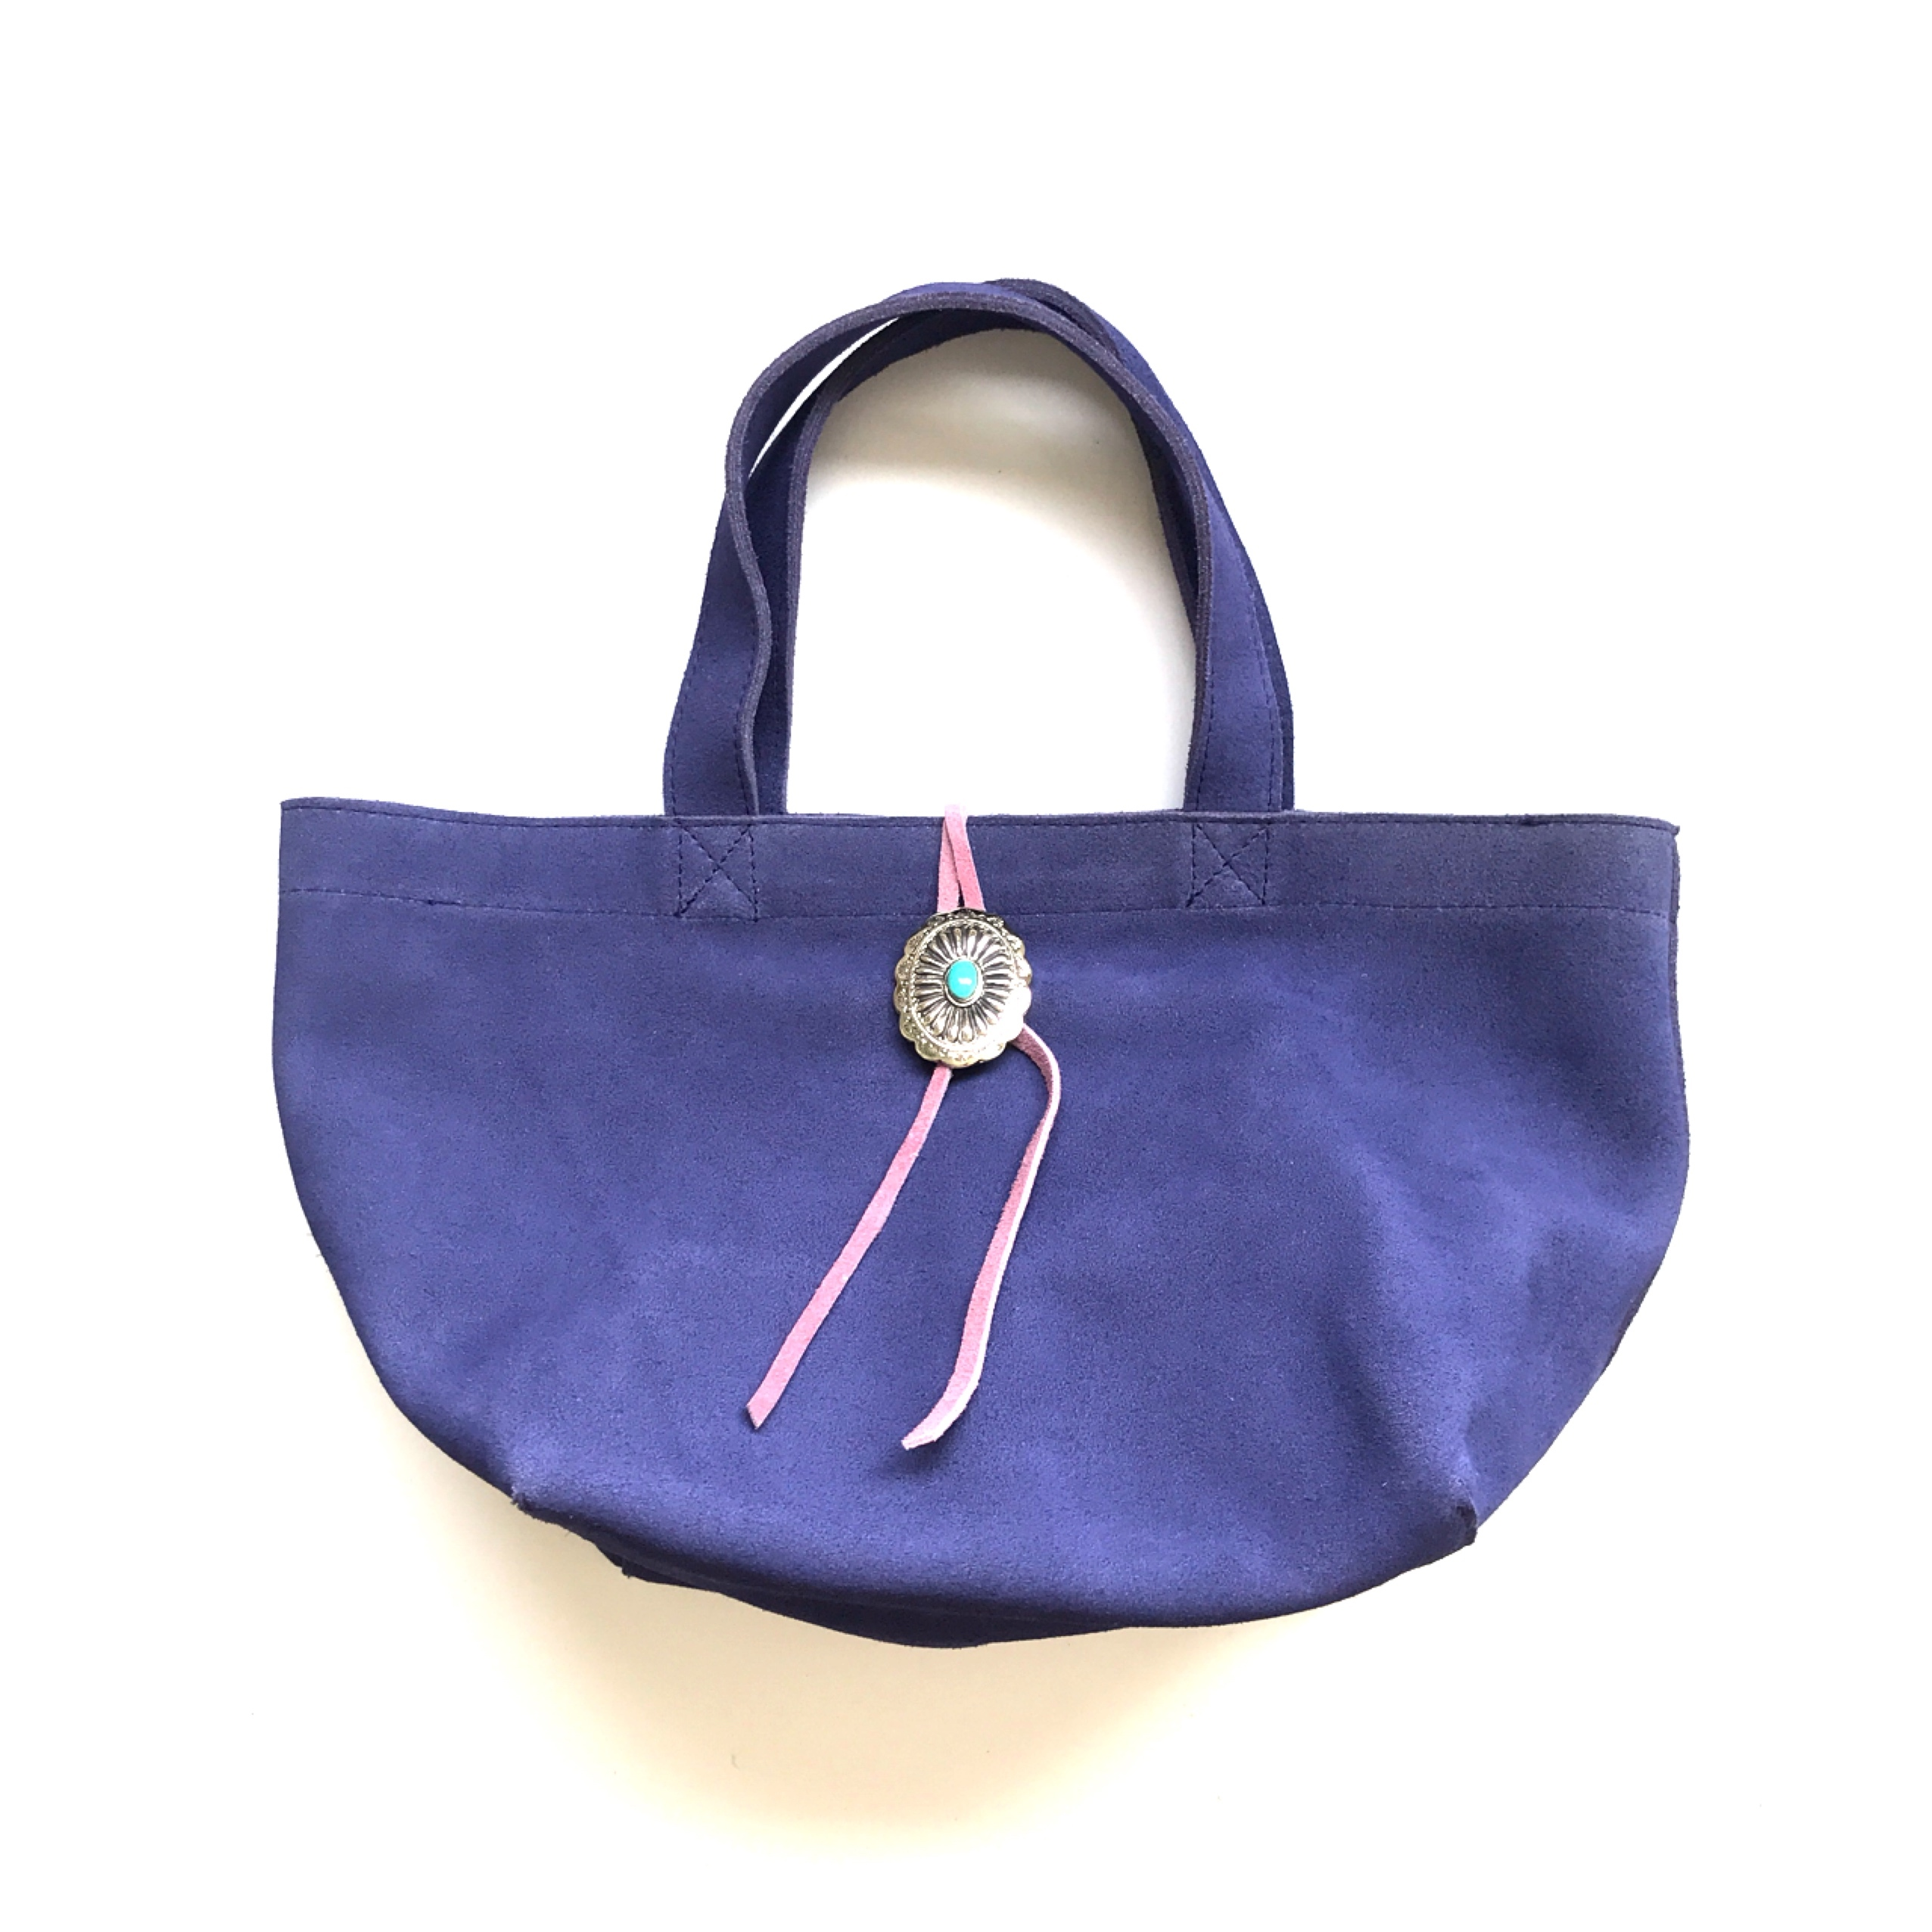 concho totebag 〈blue purple〉